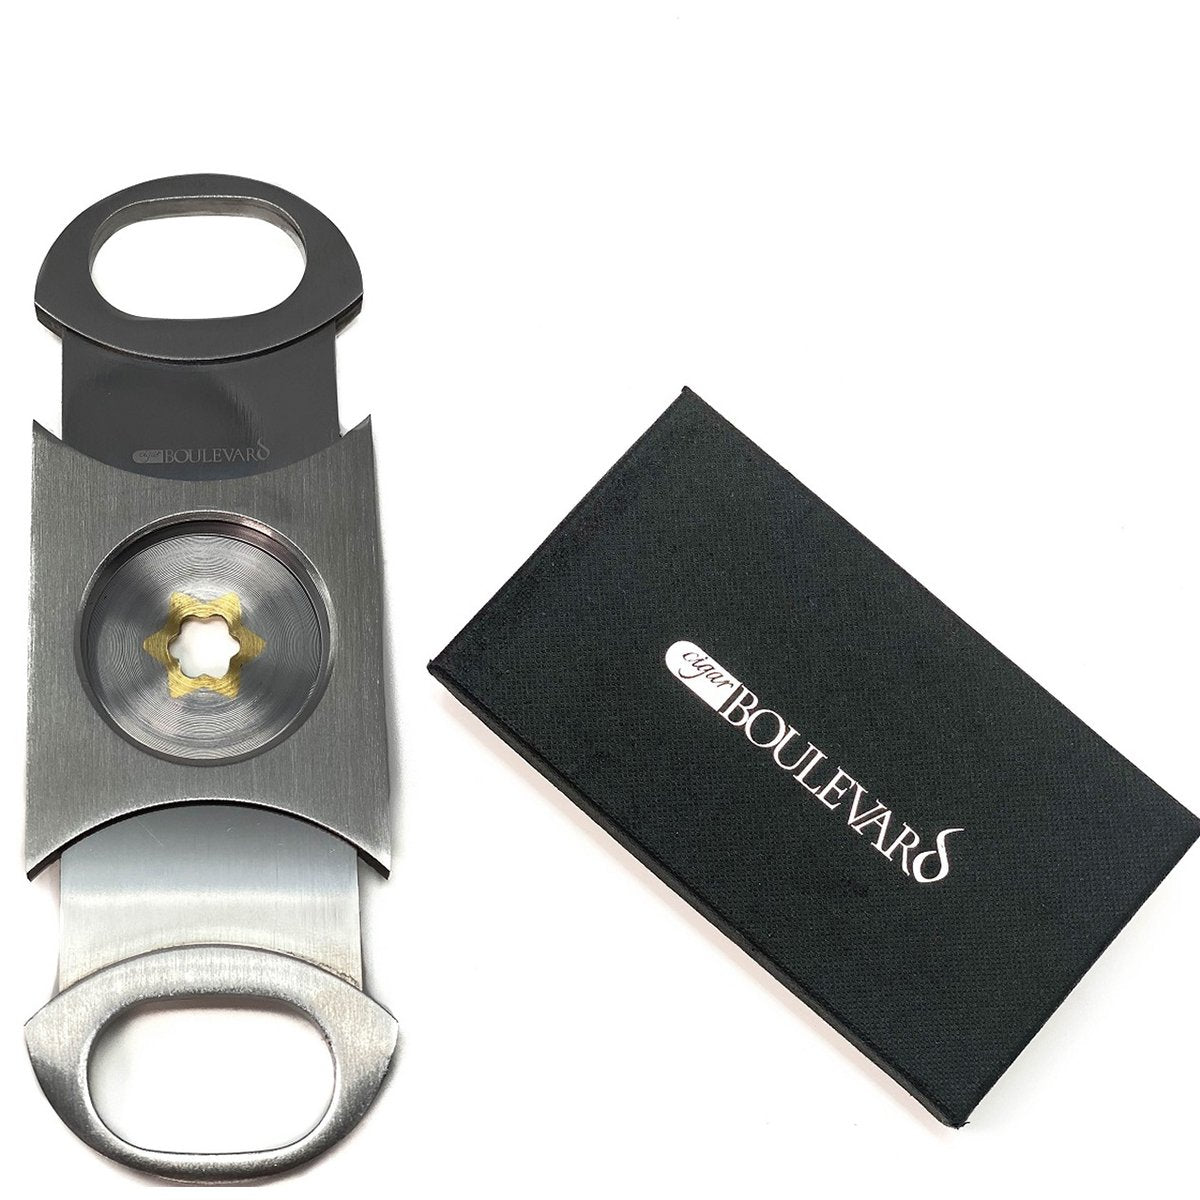 PERFECT CIGAR CUTTER STAR Stainless Steel.Up to 80 Ring Gauge Lifetime Guarantee